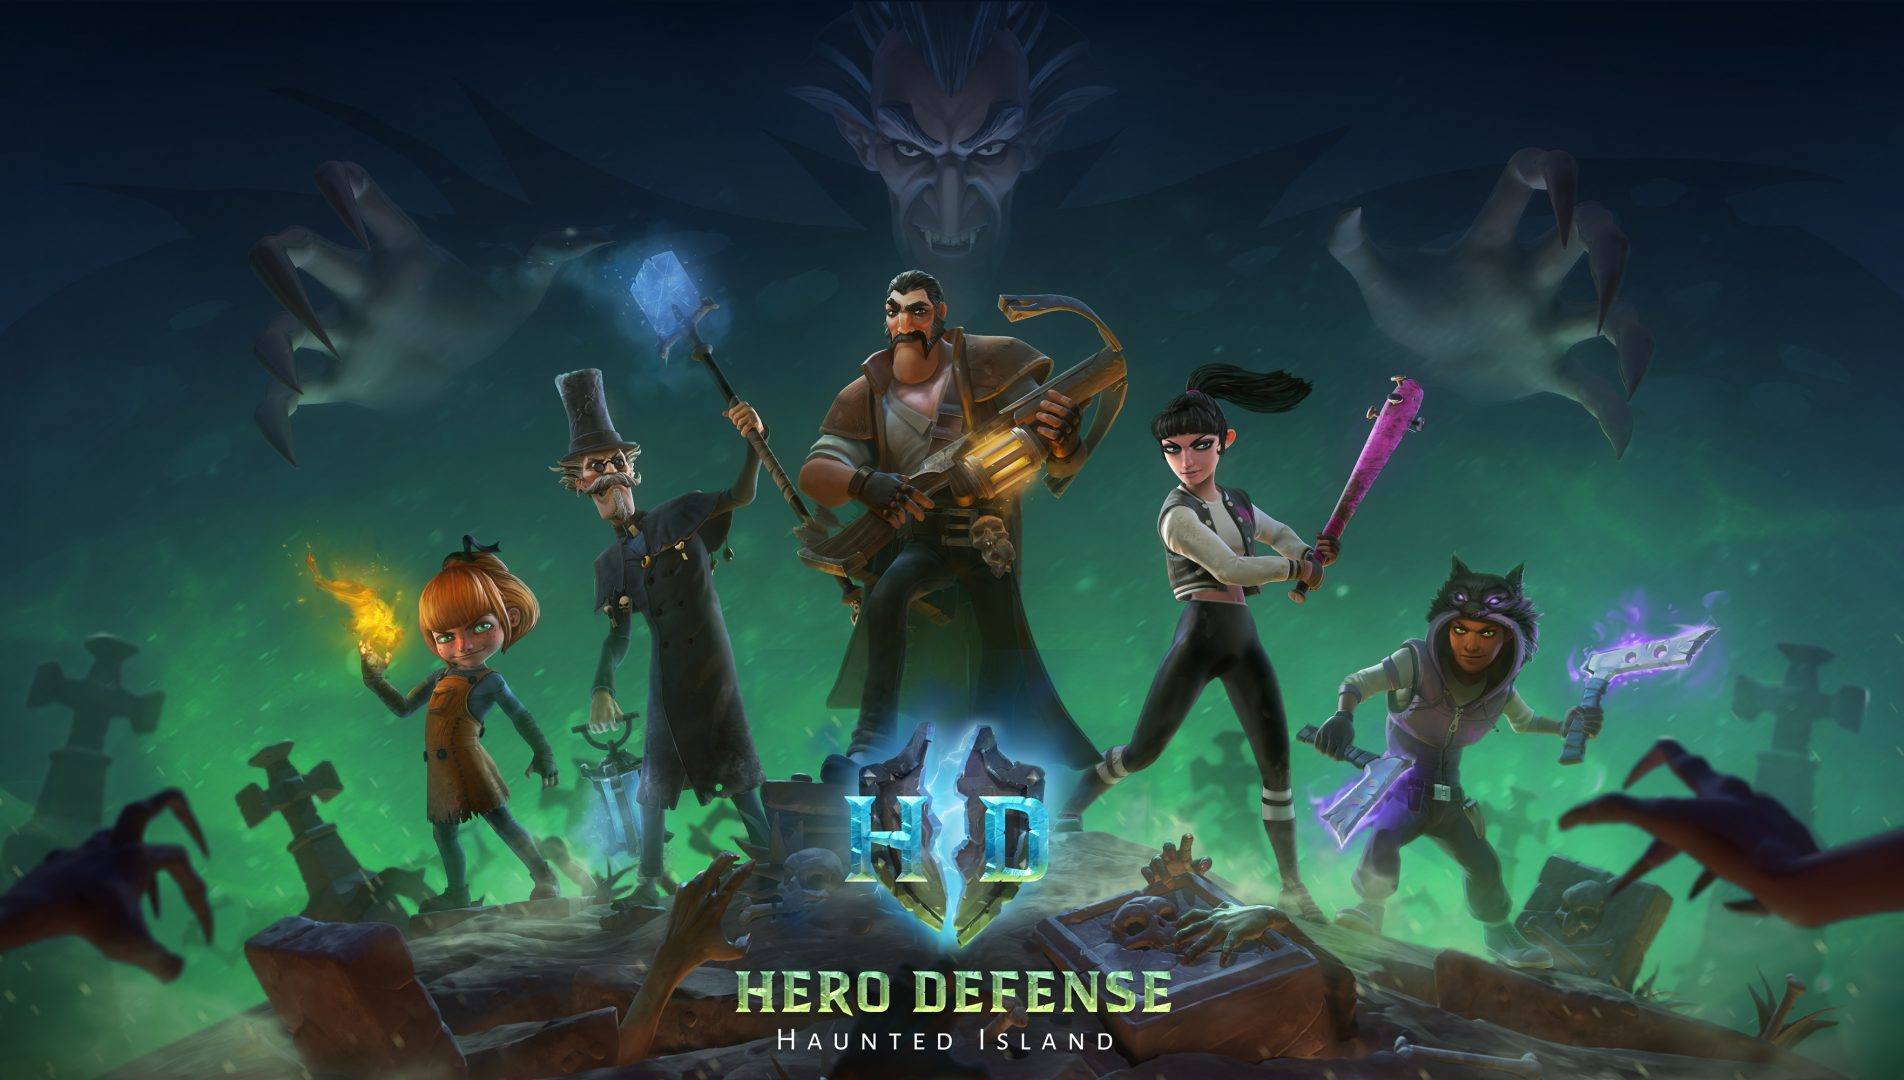 HeroDefense – Haunted Island Multiplayer Update Now Available